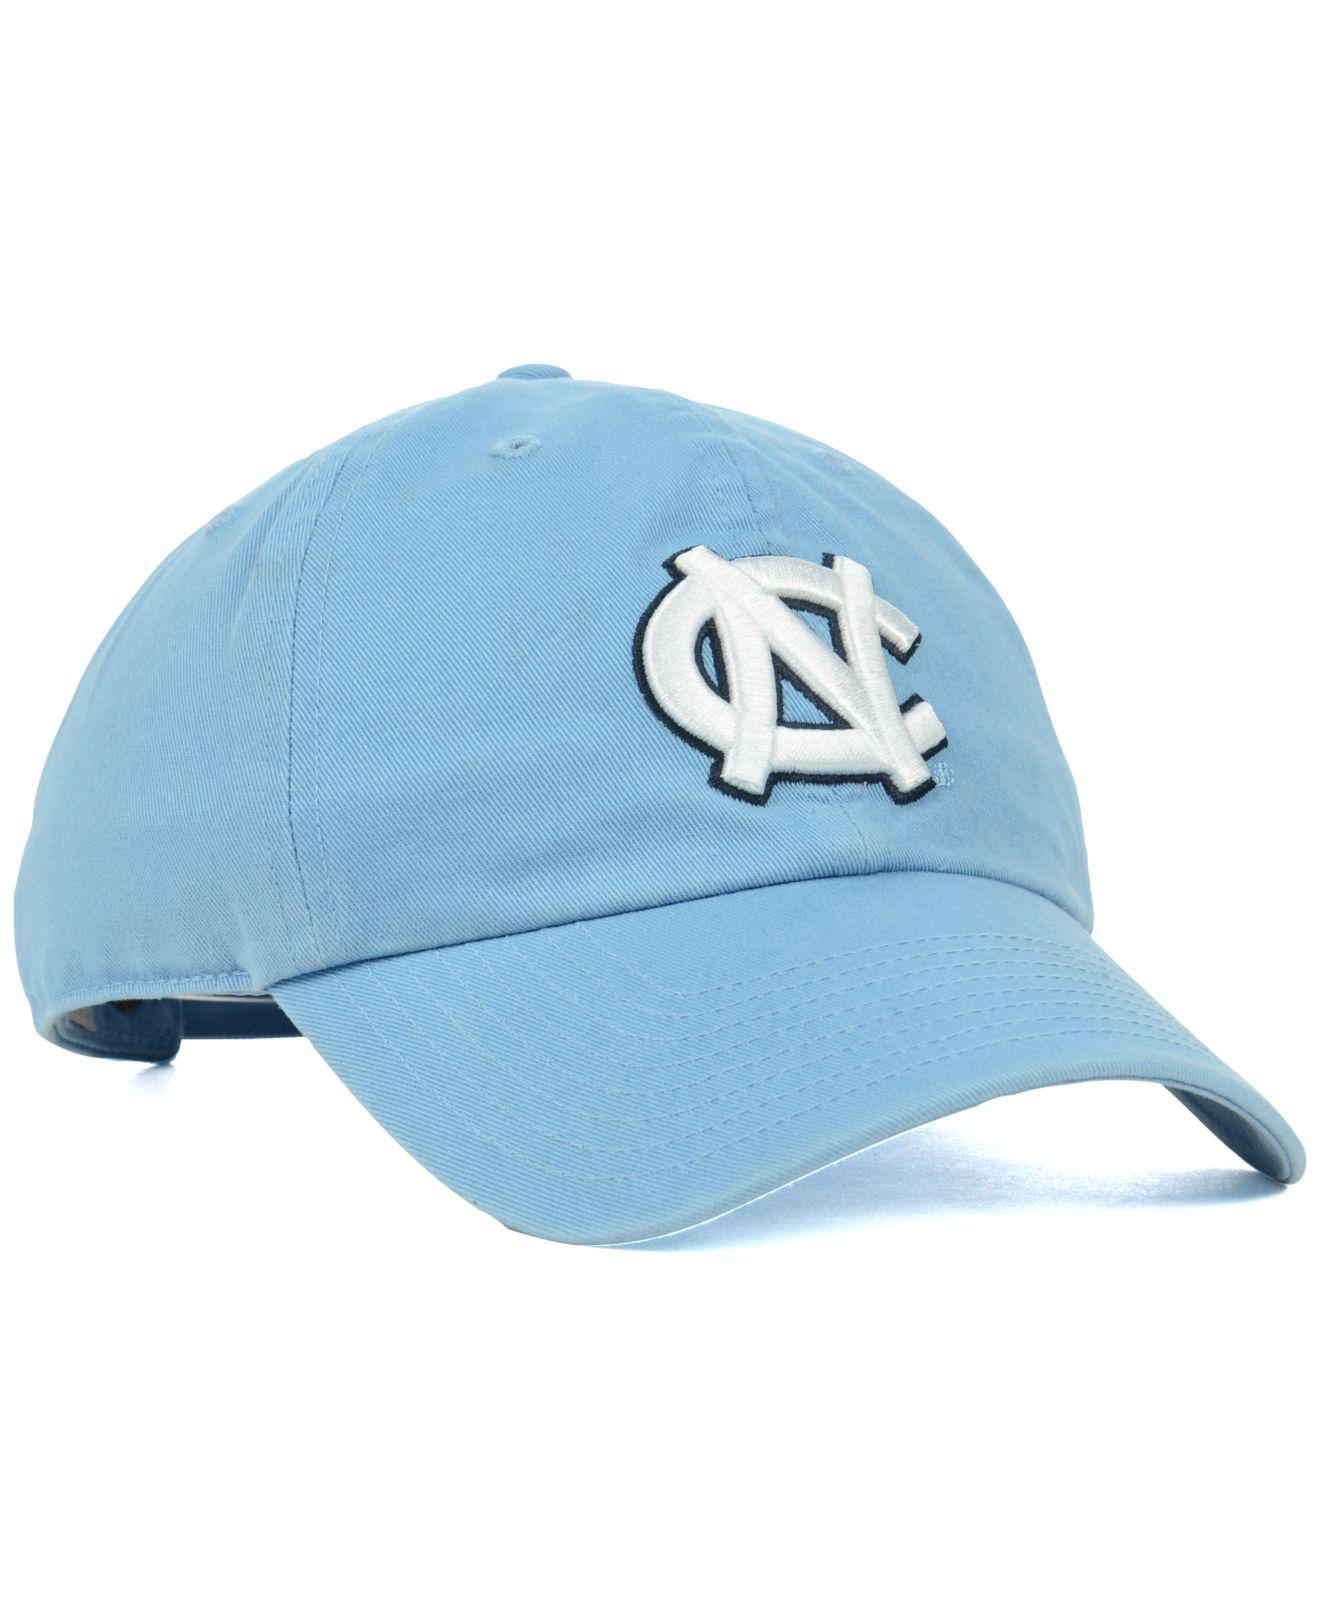 huge selection of 64764 c9a1d ... clearance 47 brand blue north carolina tar heels ncaa clean up cap for  men . view